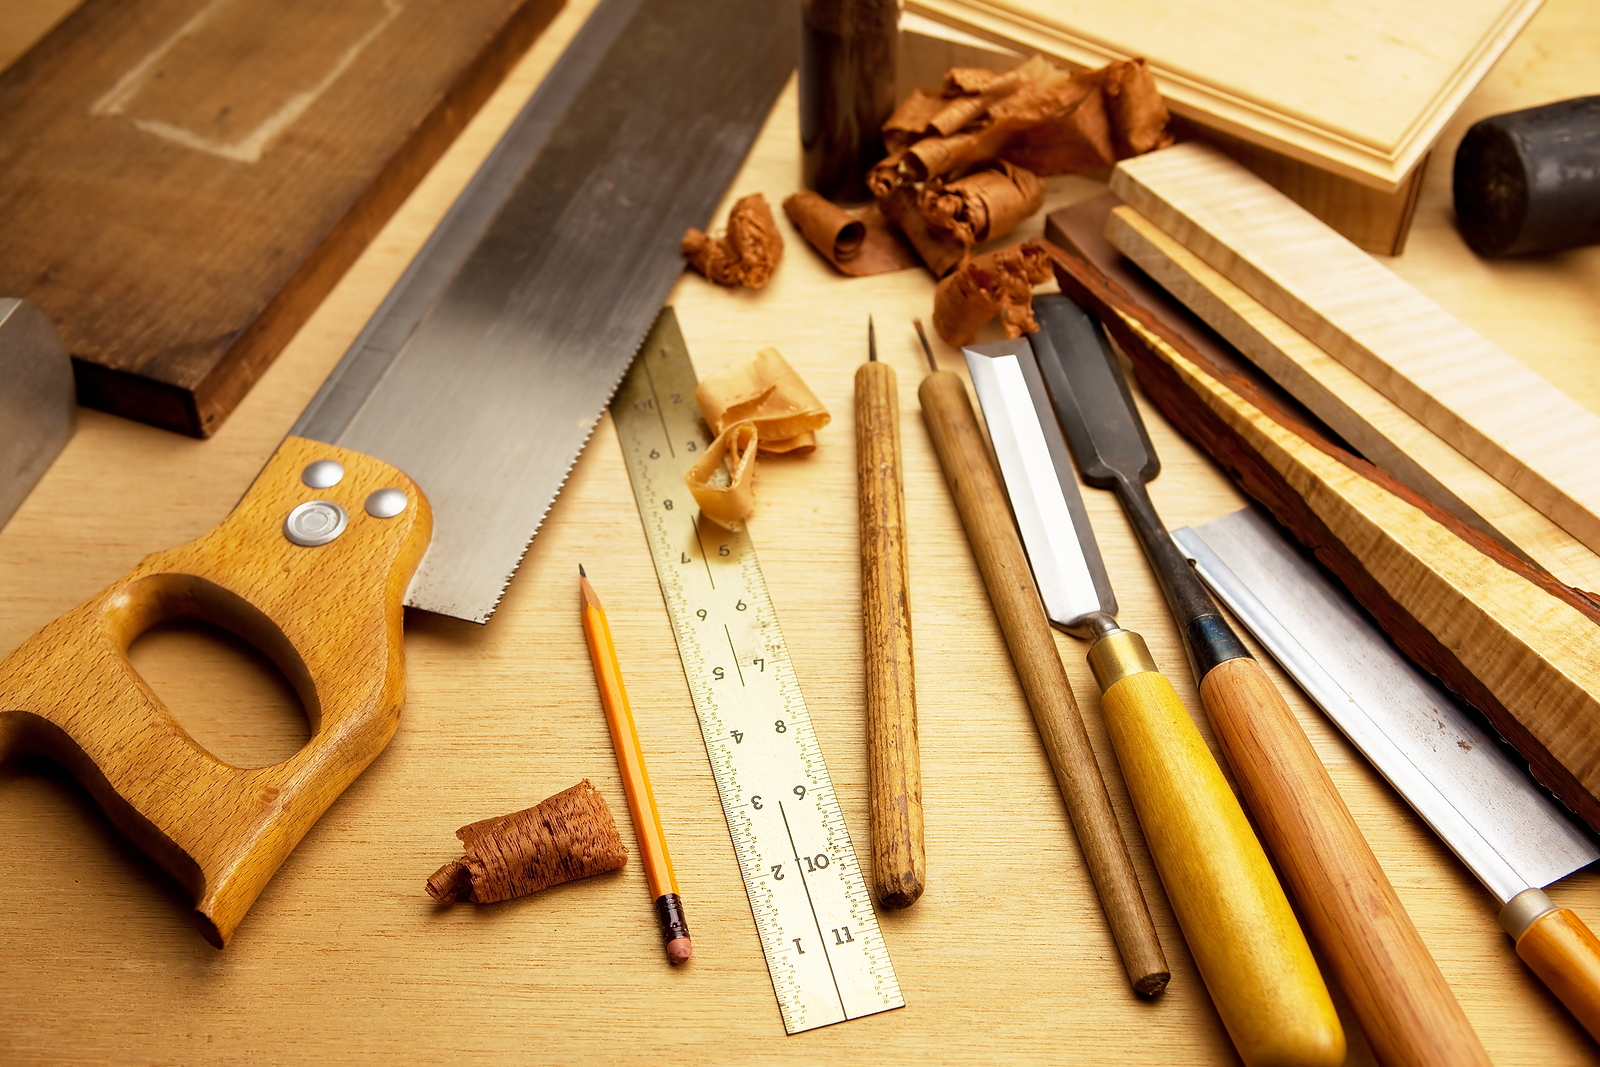 The Right Way To Start With Traditional Woodworking